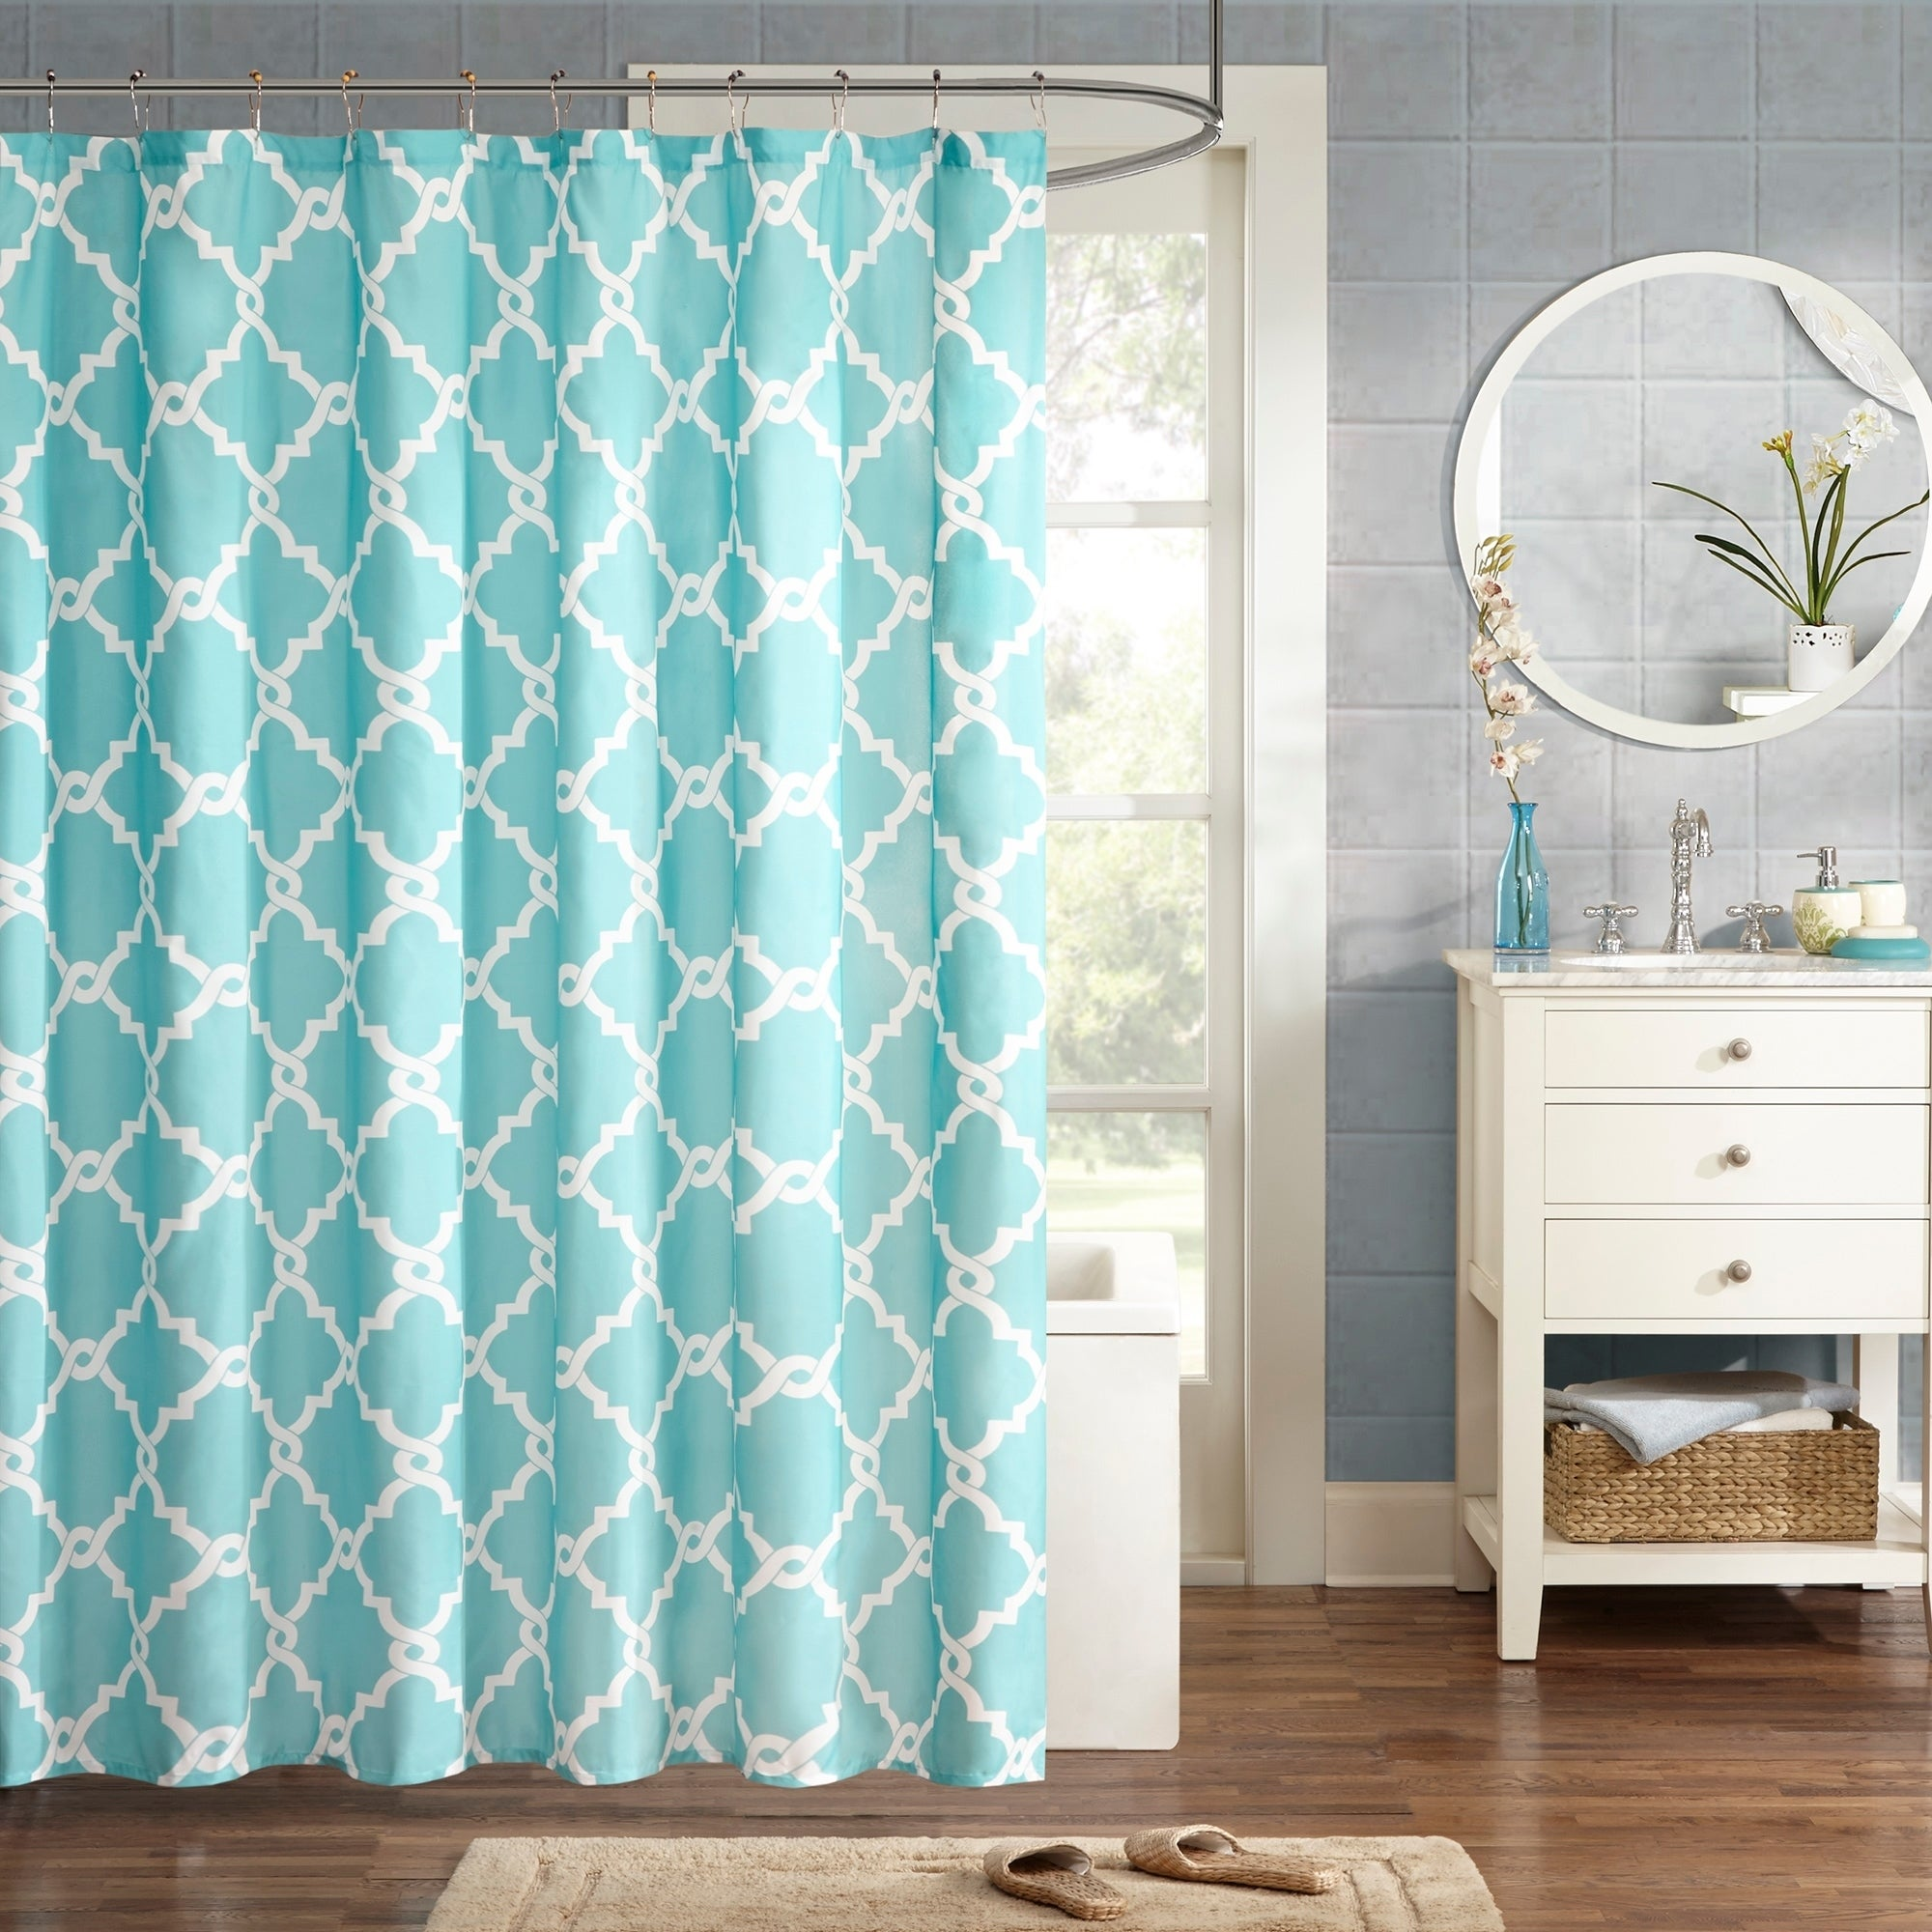 Buy Blue Shower Curtains Online At Overstock